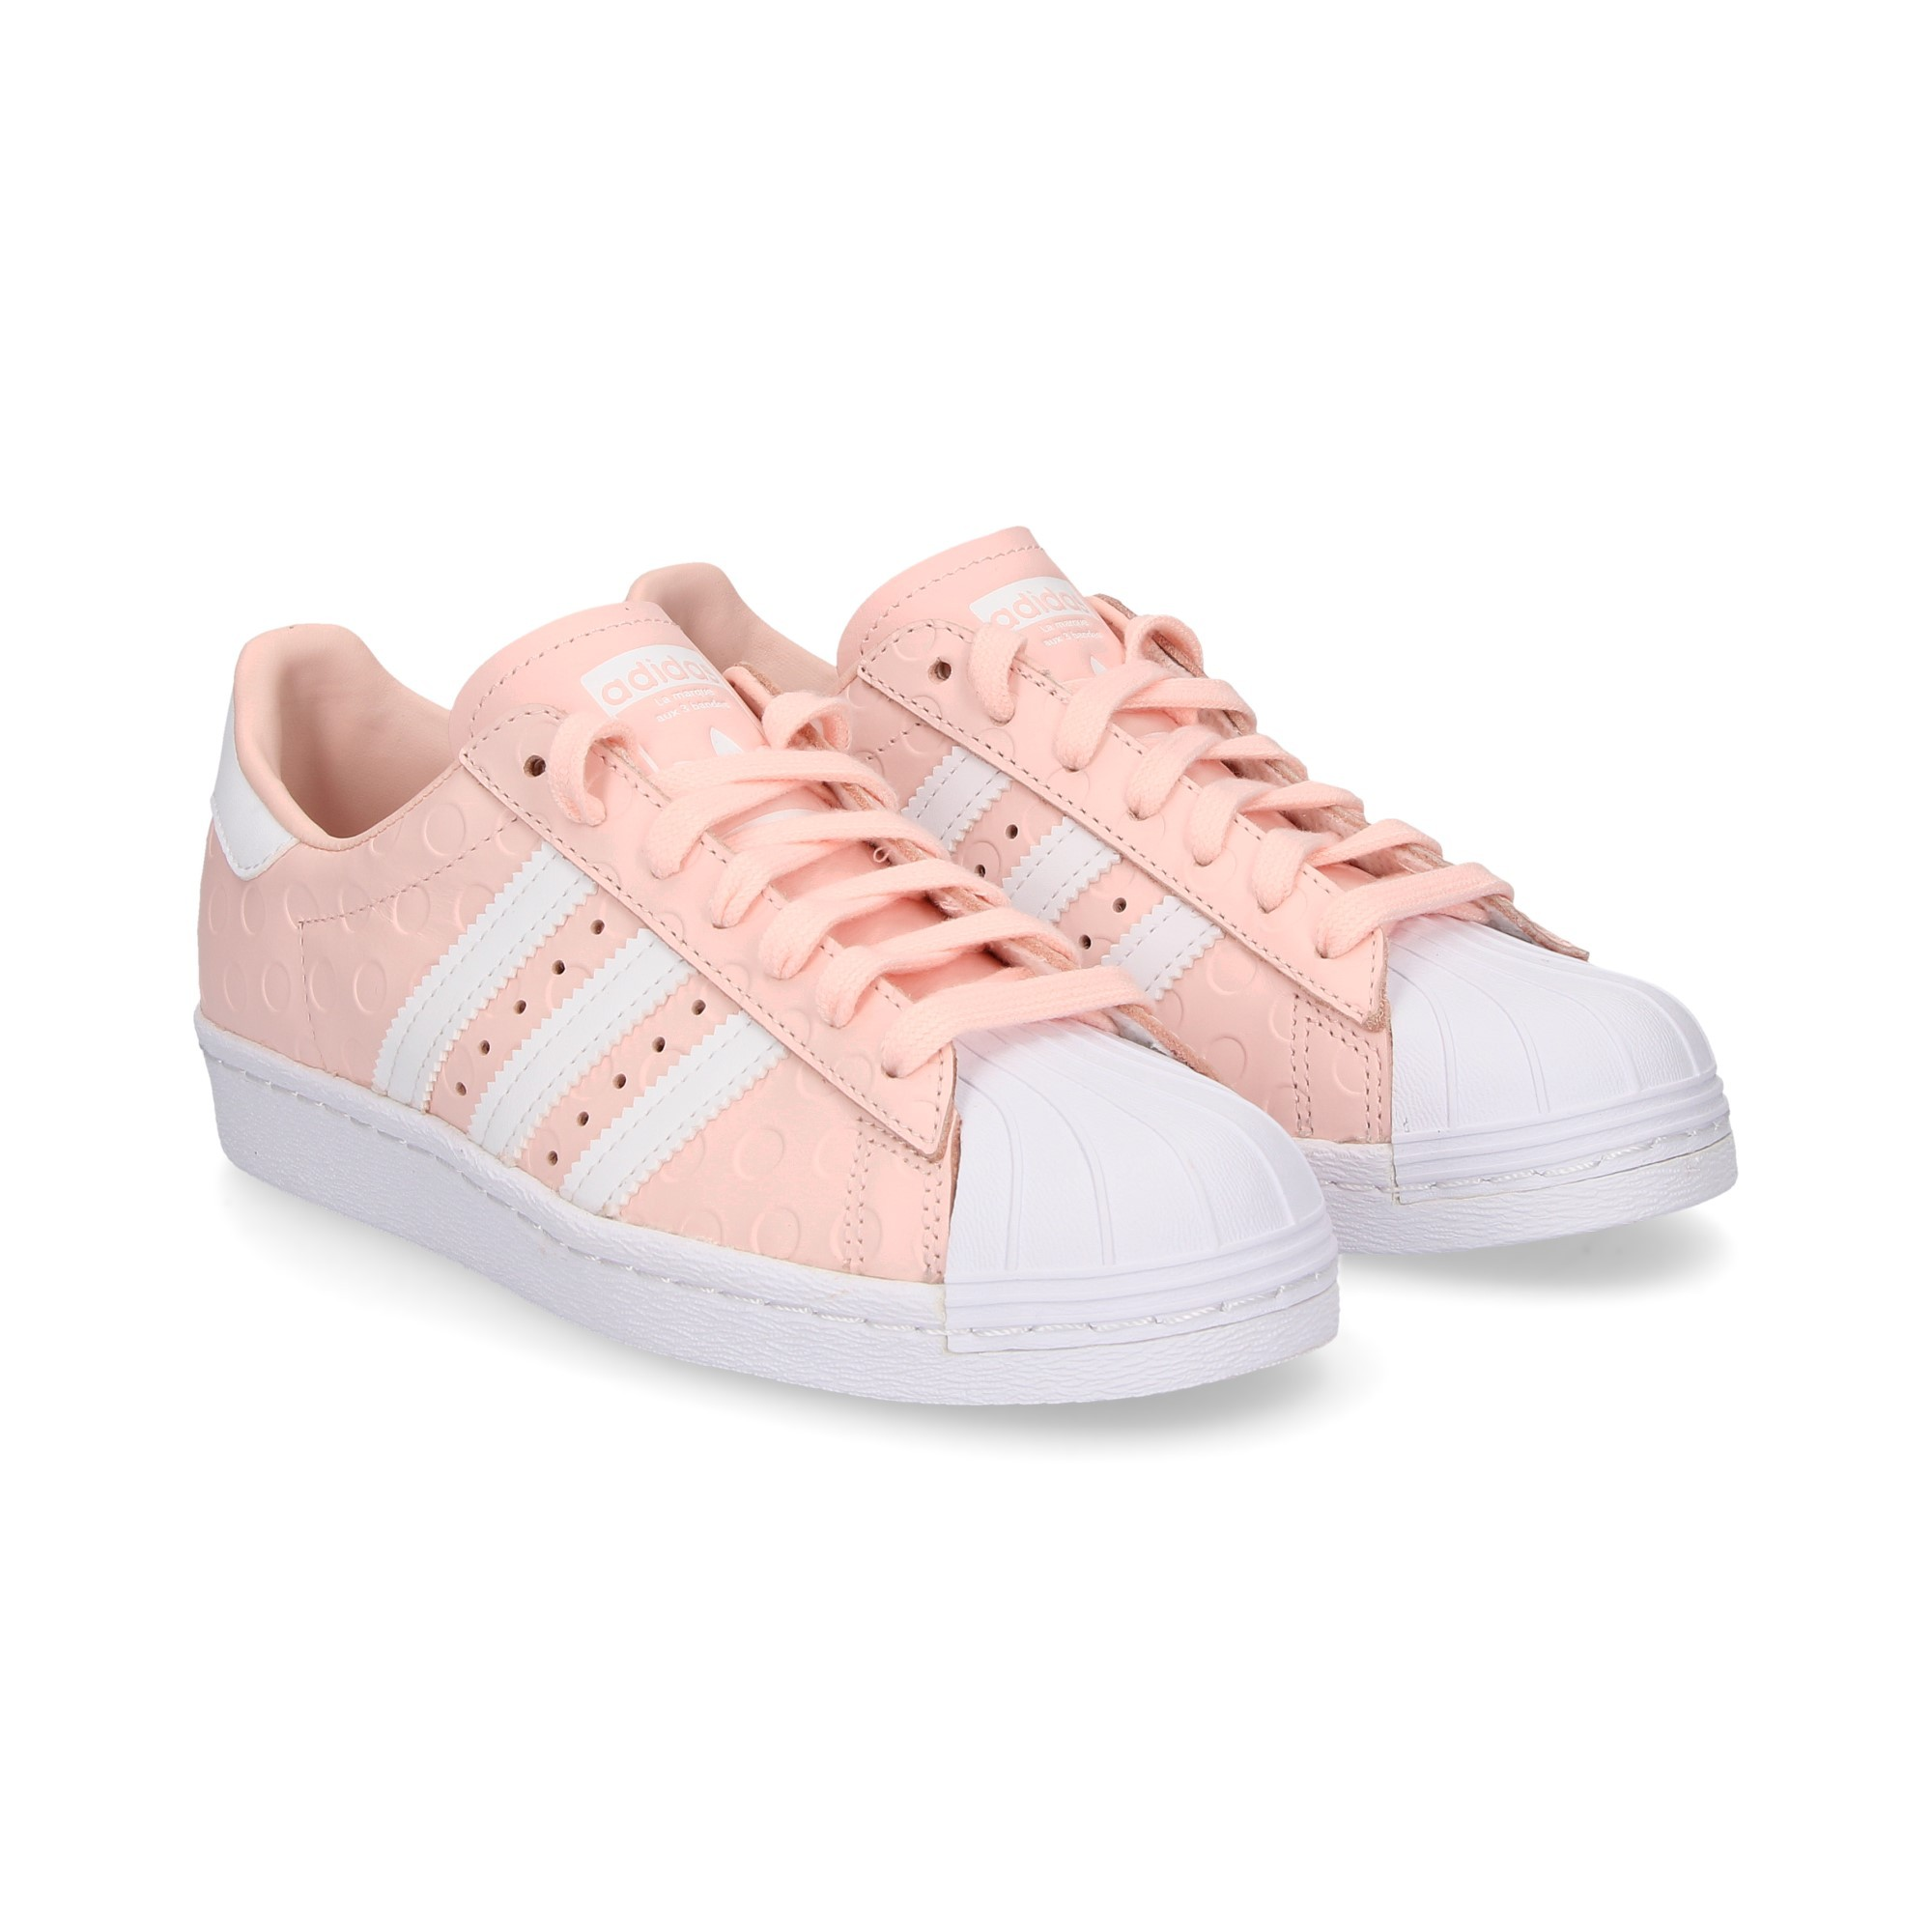 factory authentic c78dc ba214 ... coupon code adidas womens sneakers superstar rosa 22a00 b1176